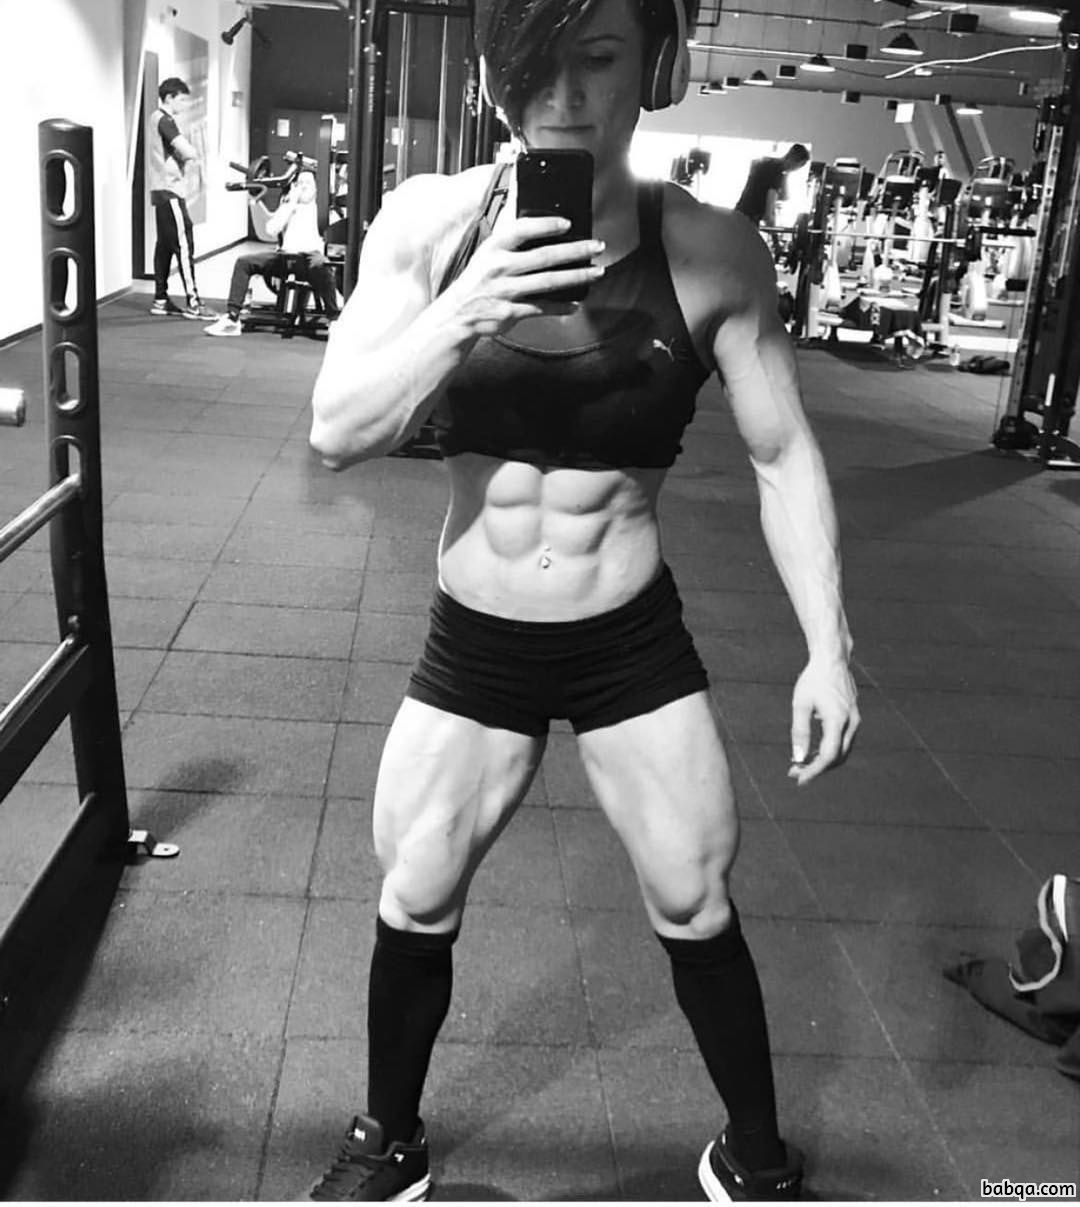 awesome female with fitness body and muscle biceps repost from insta